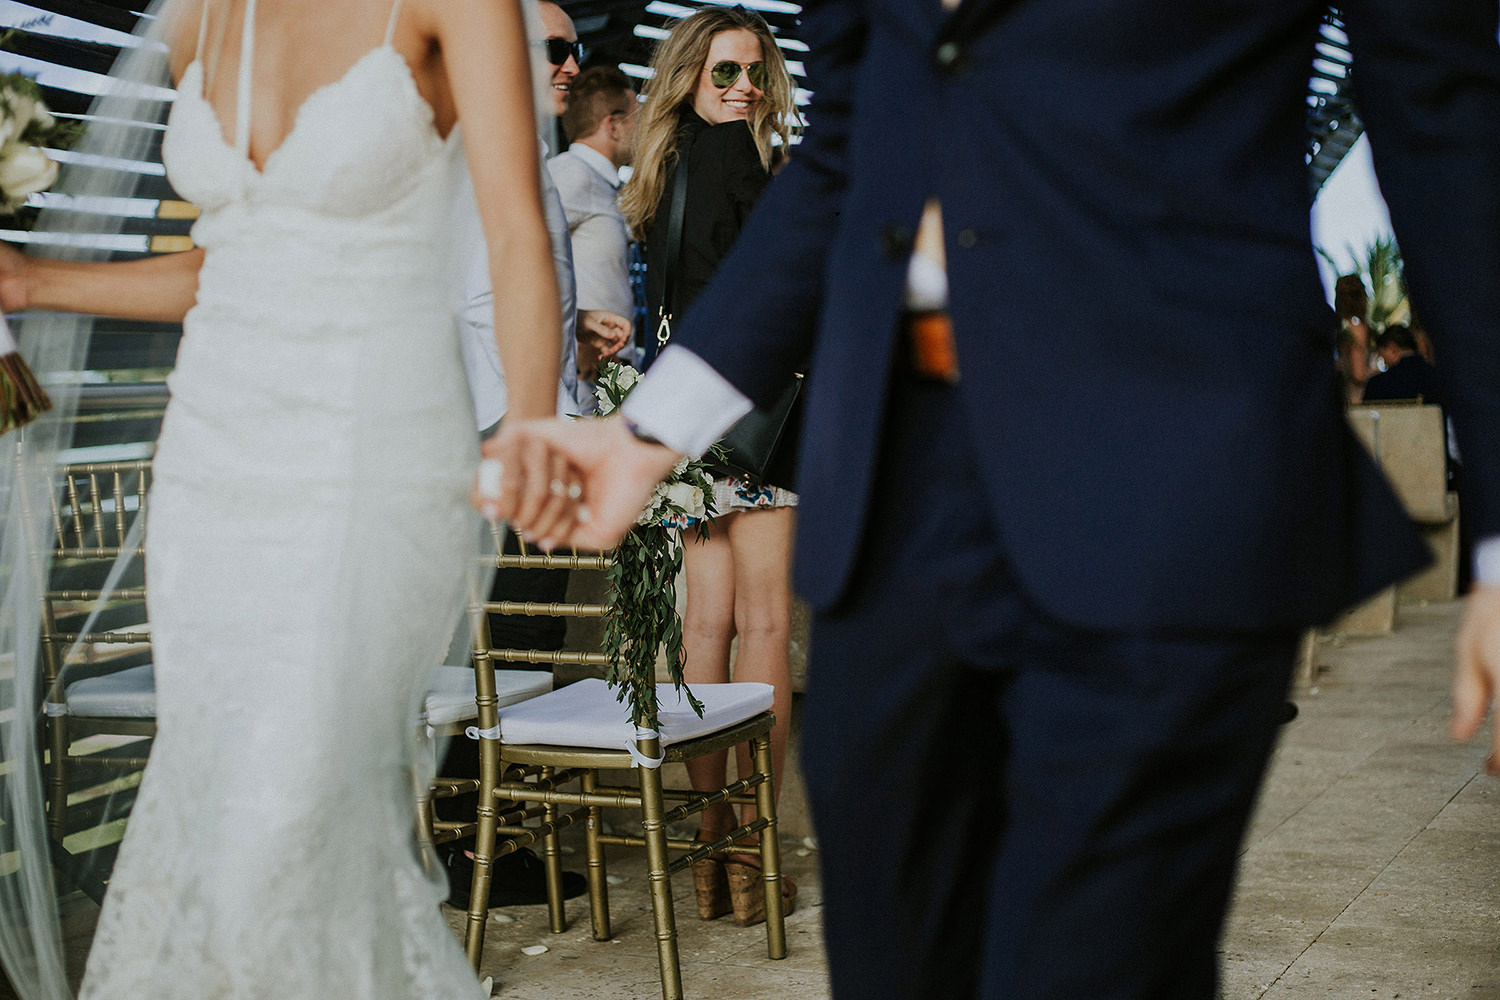 CherylReed_Wedding_Kape_Photography_WeddingPhotography_Mexico_Boda_Fotografia_Royalton_Hideway_Cancun_RivieraMaya_PlayadelCarmen_Beach_327FB_BLOG.jpg